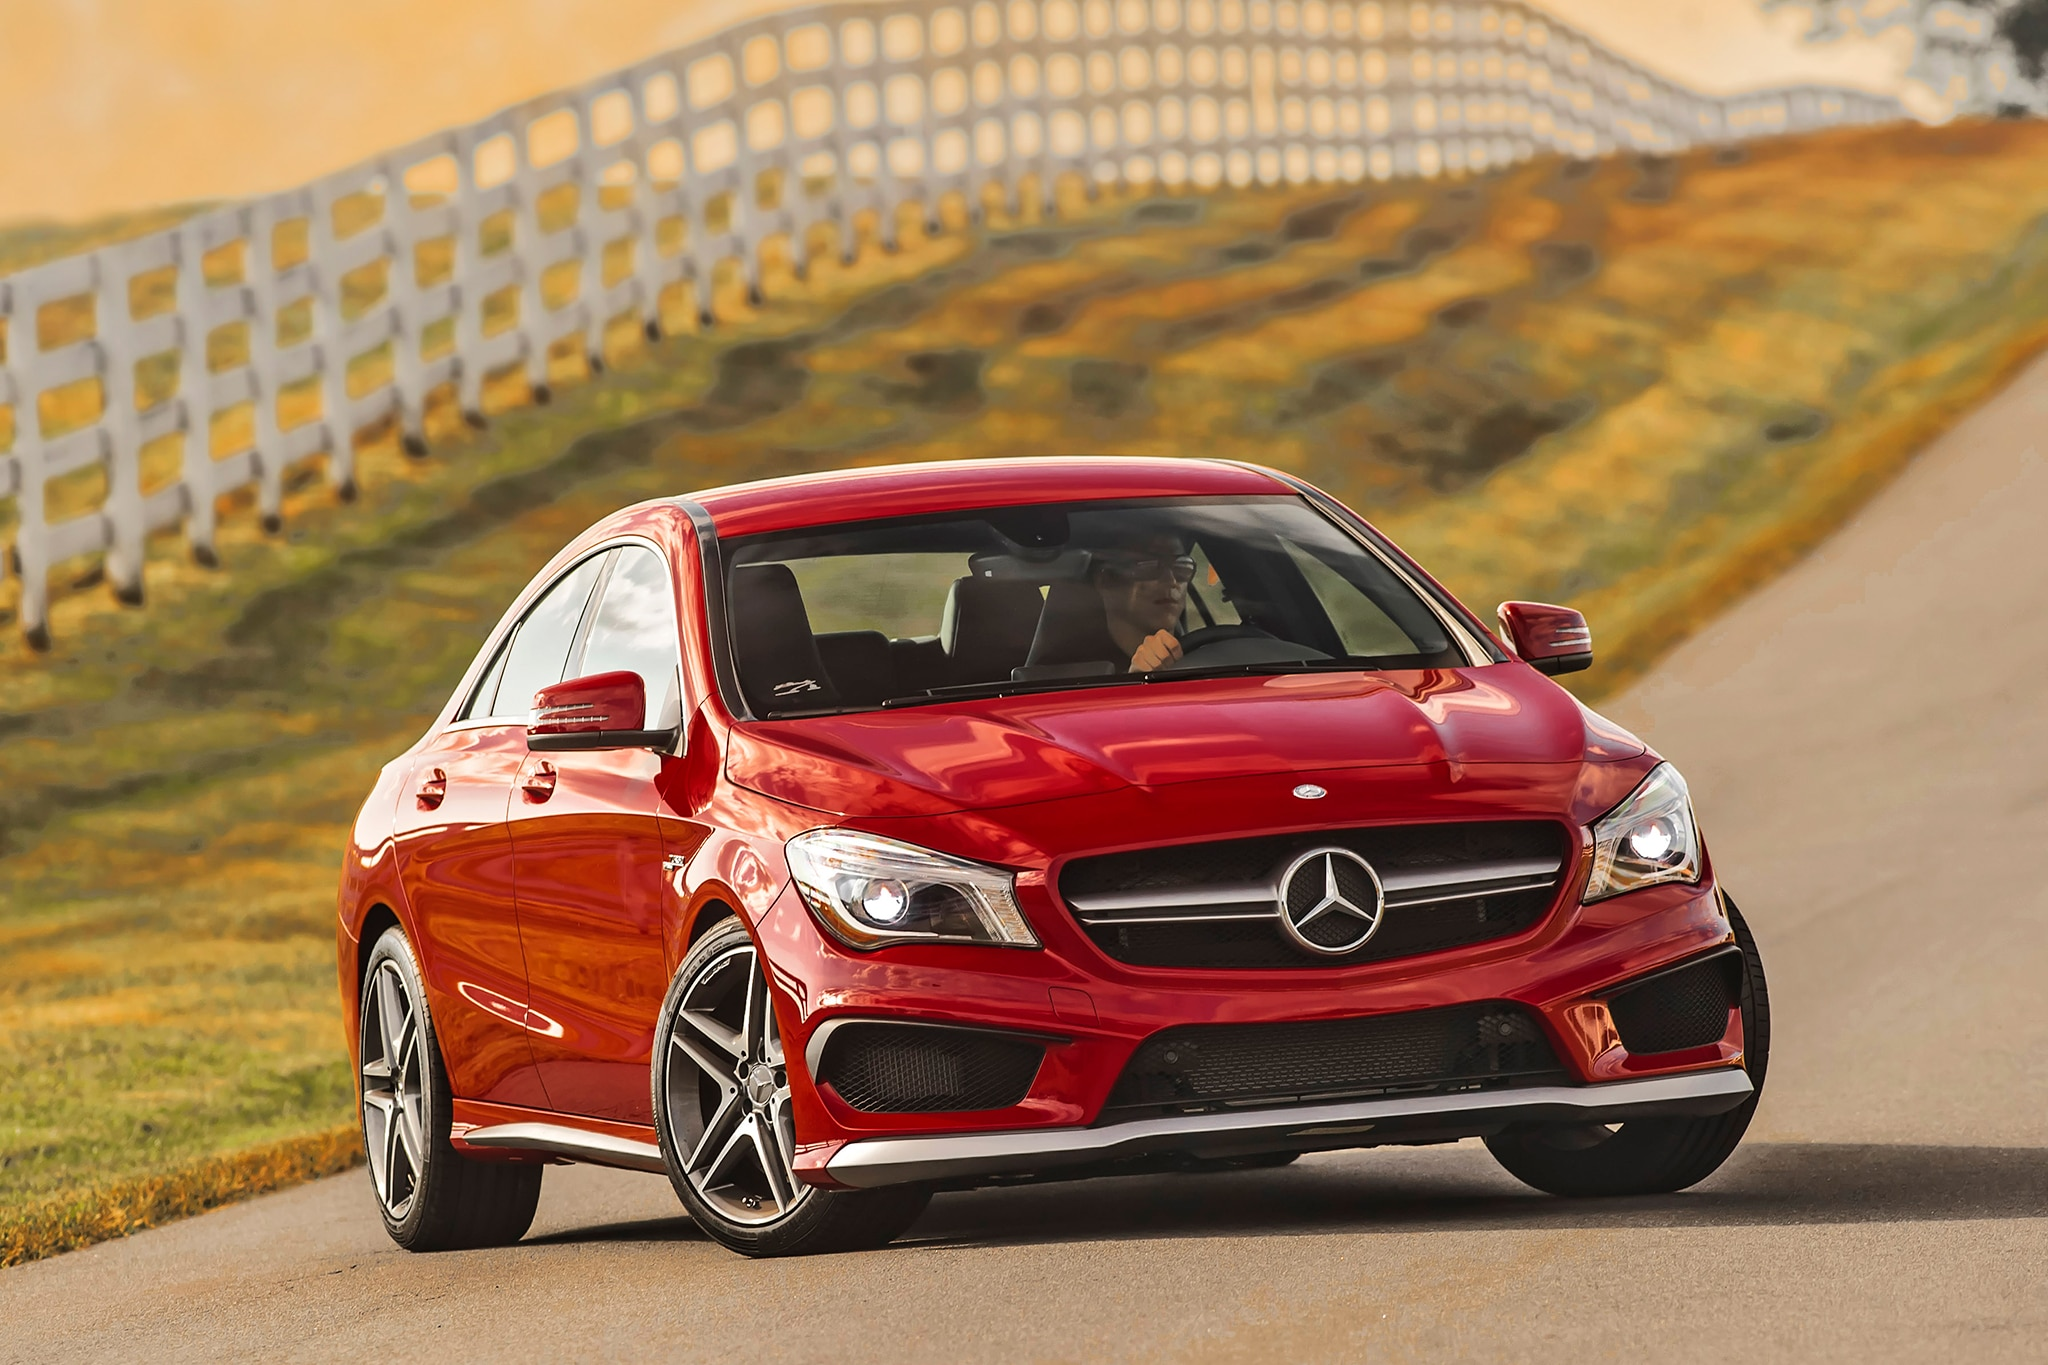 2015 mercedes benz cla price increases 1 600 to 32 425 for Mercedes benz cla 2014 price